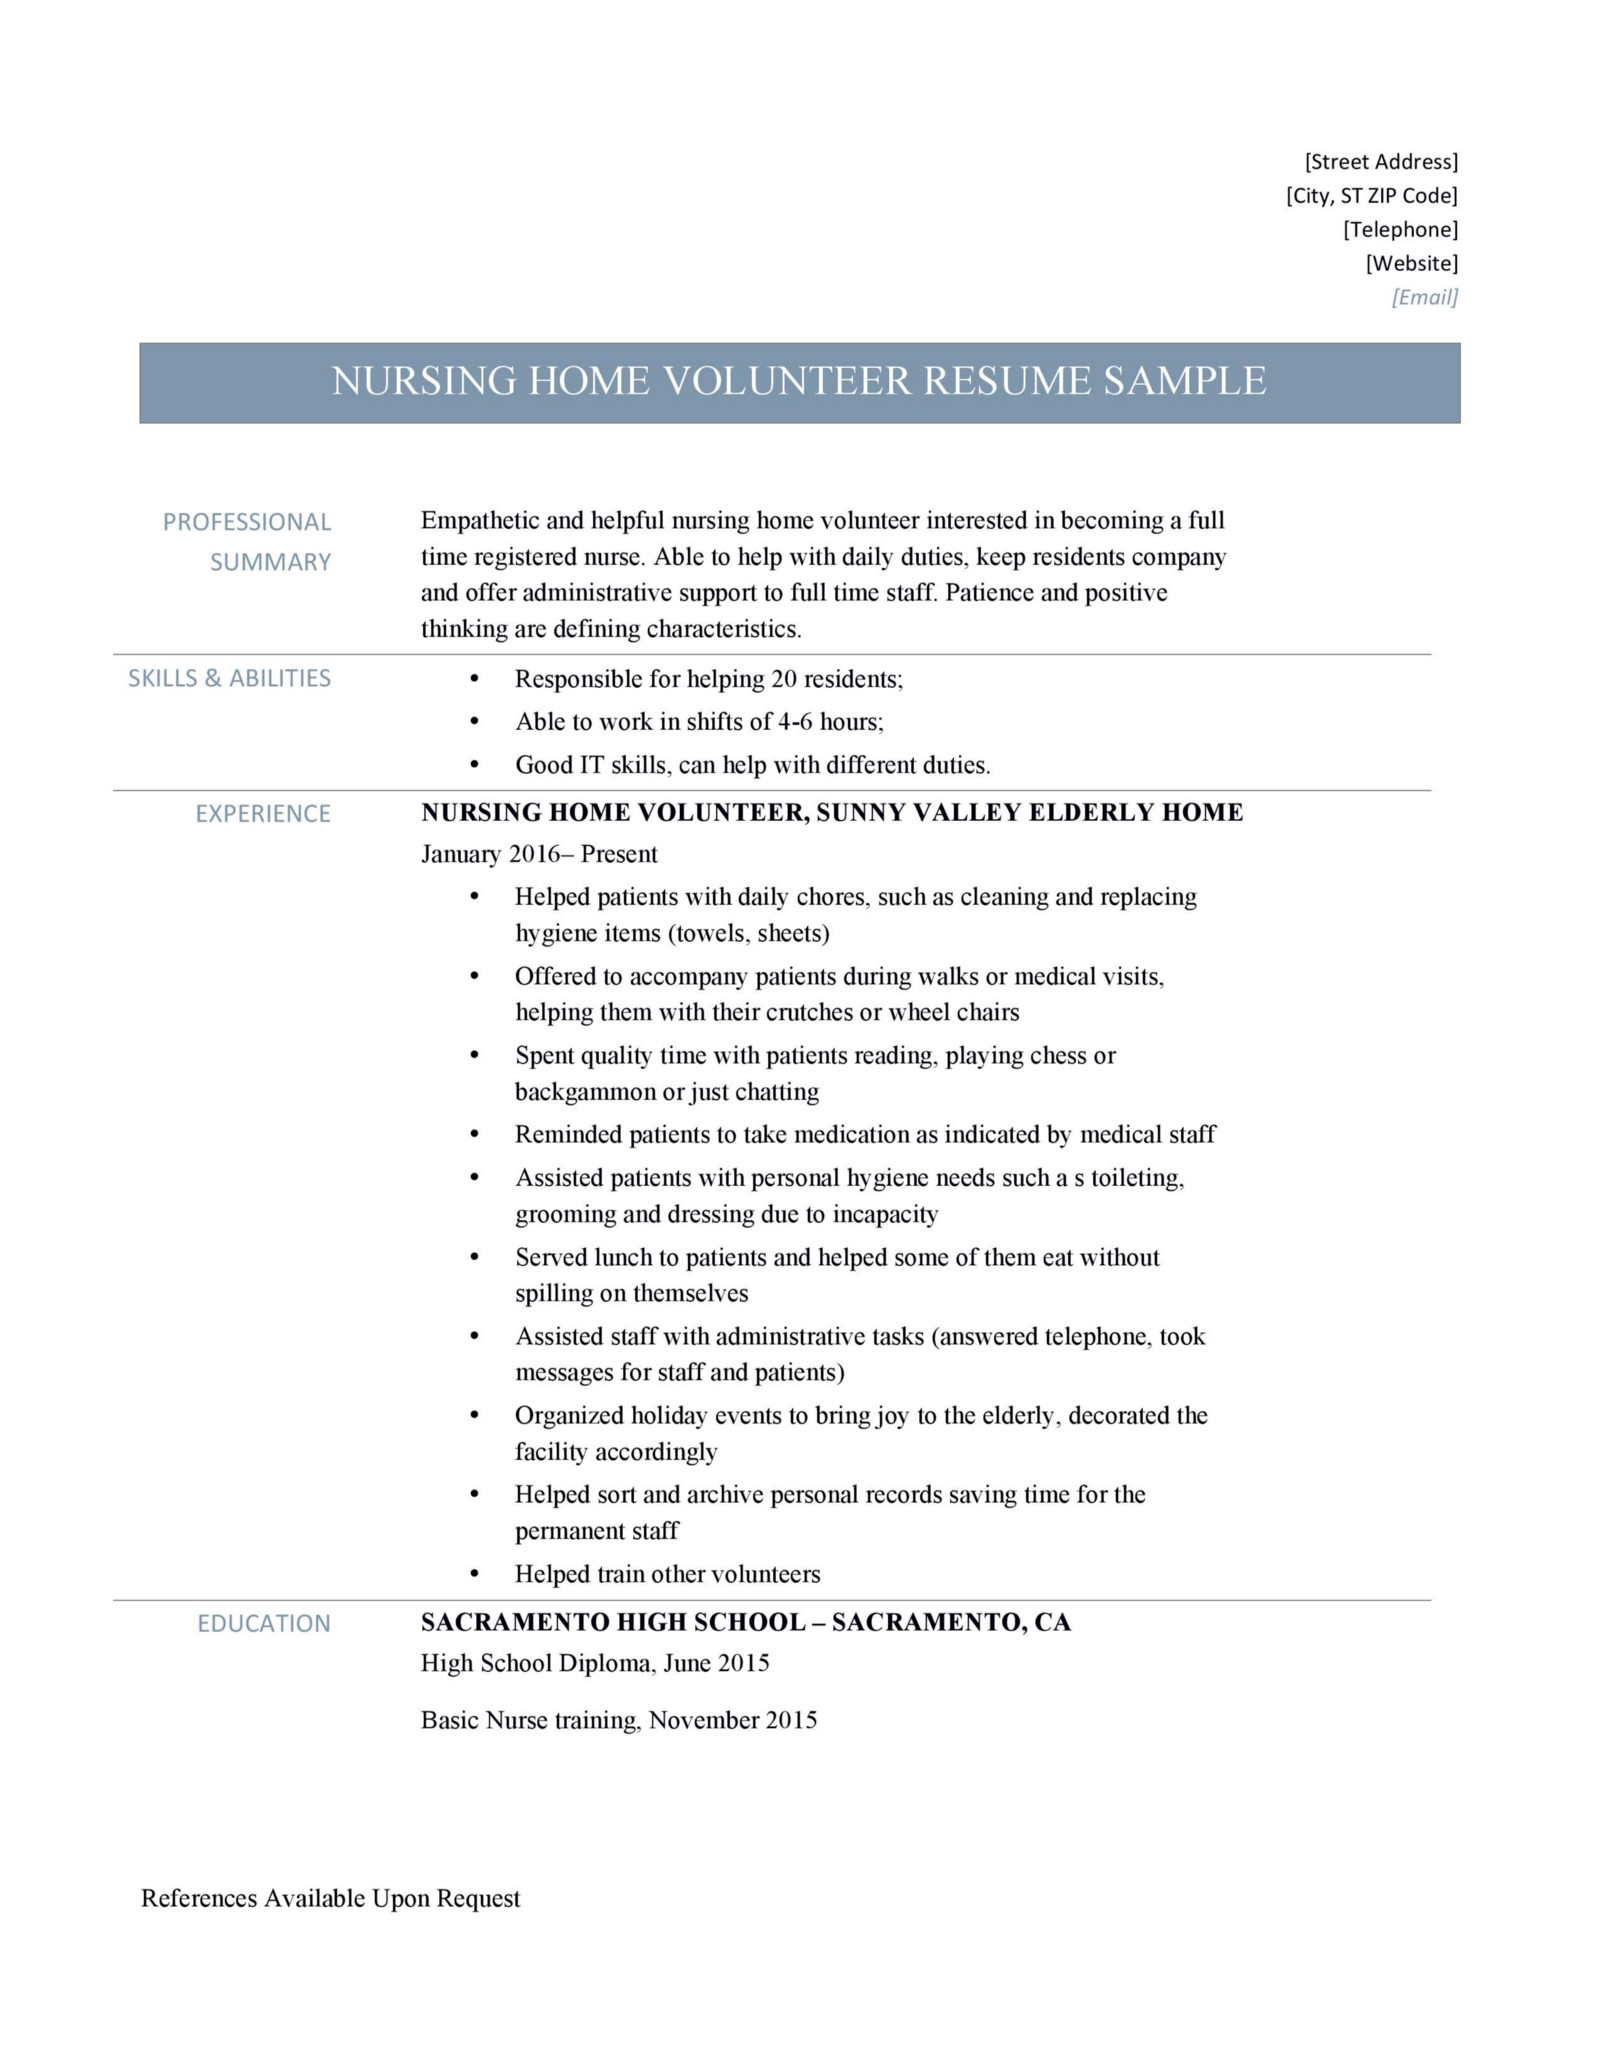 Nursing Home Volunteer Resume Samples and Job Description